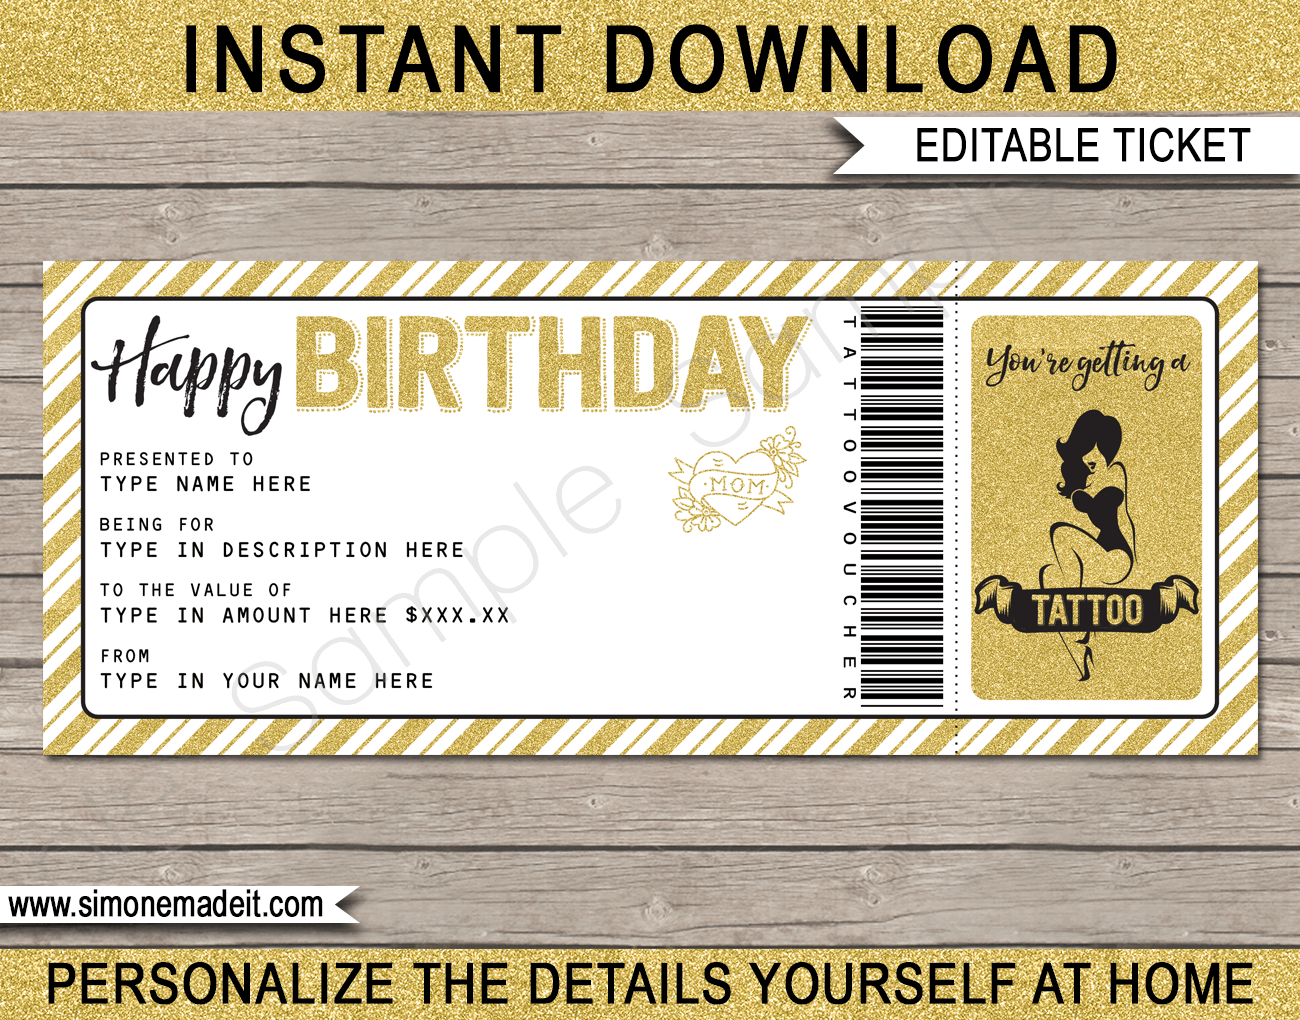 Birthday Tattoo Gift Vouchers With Tattoo Gift Certificate Template